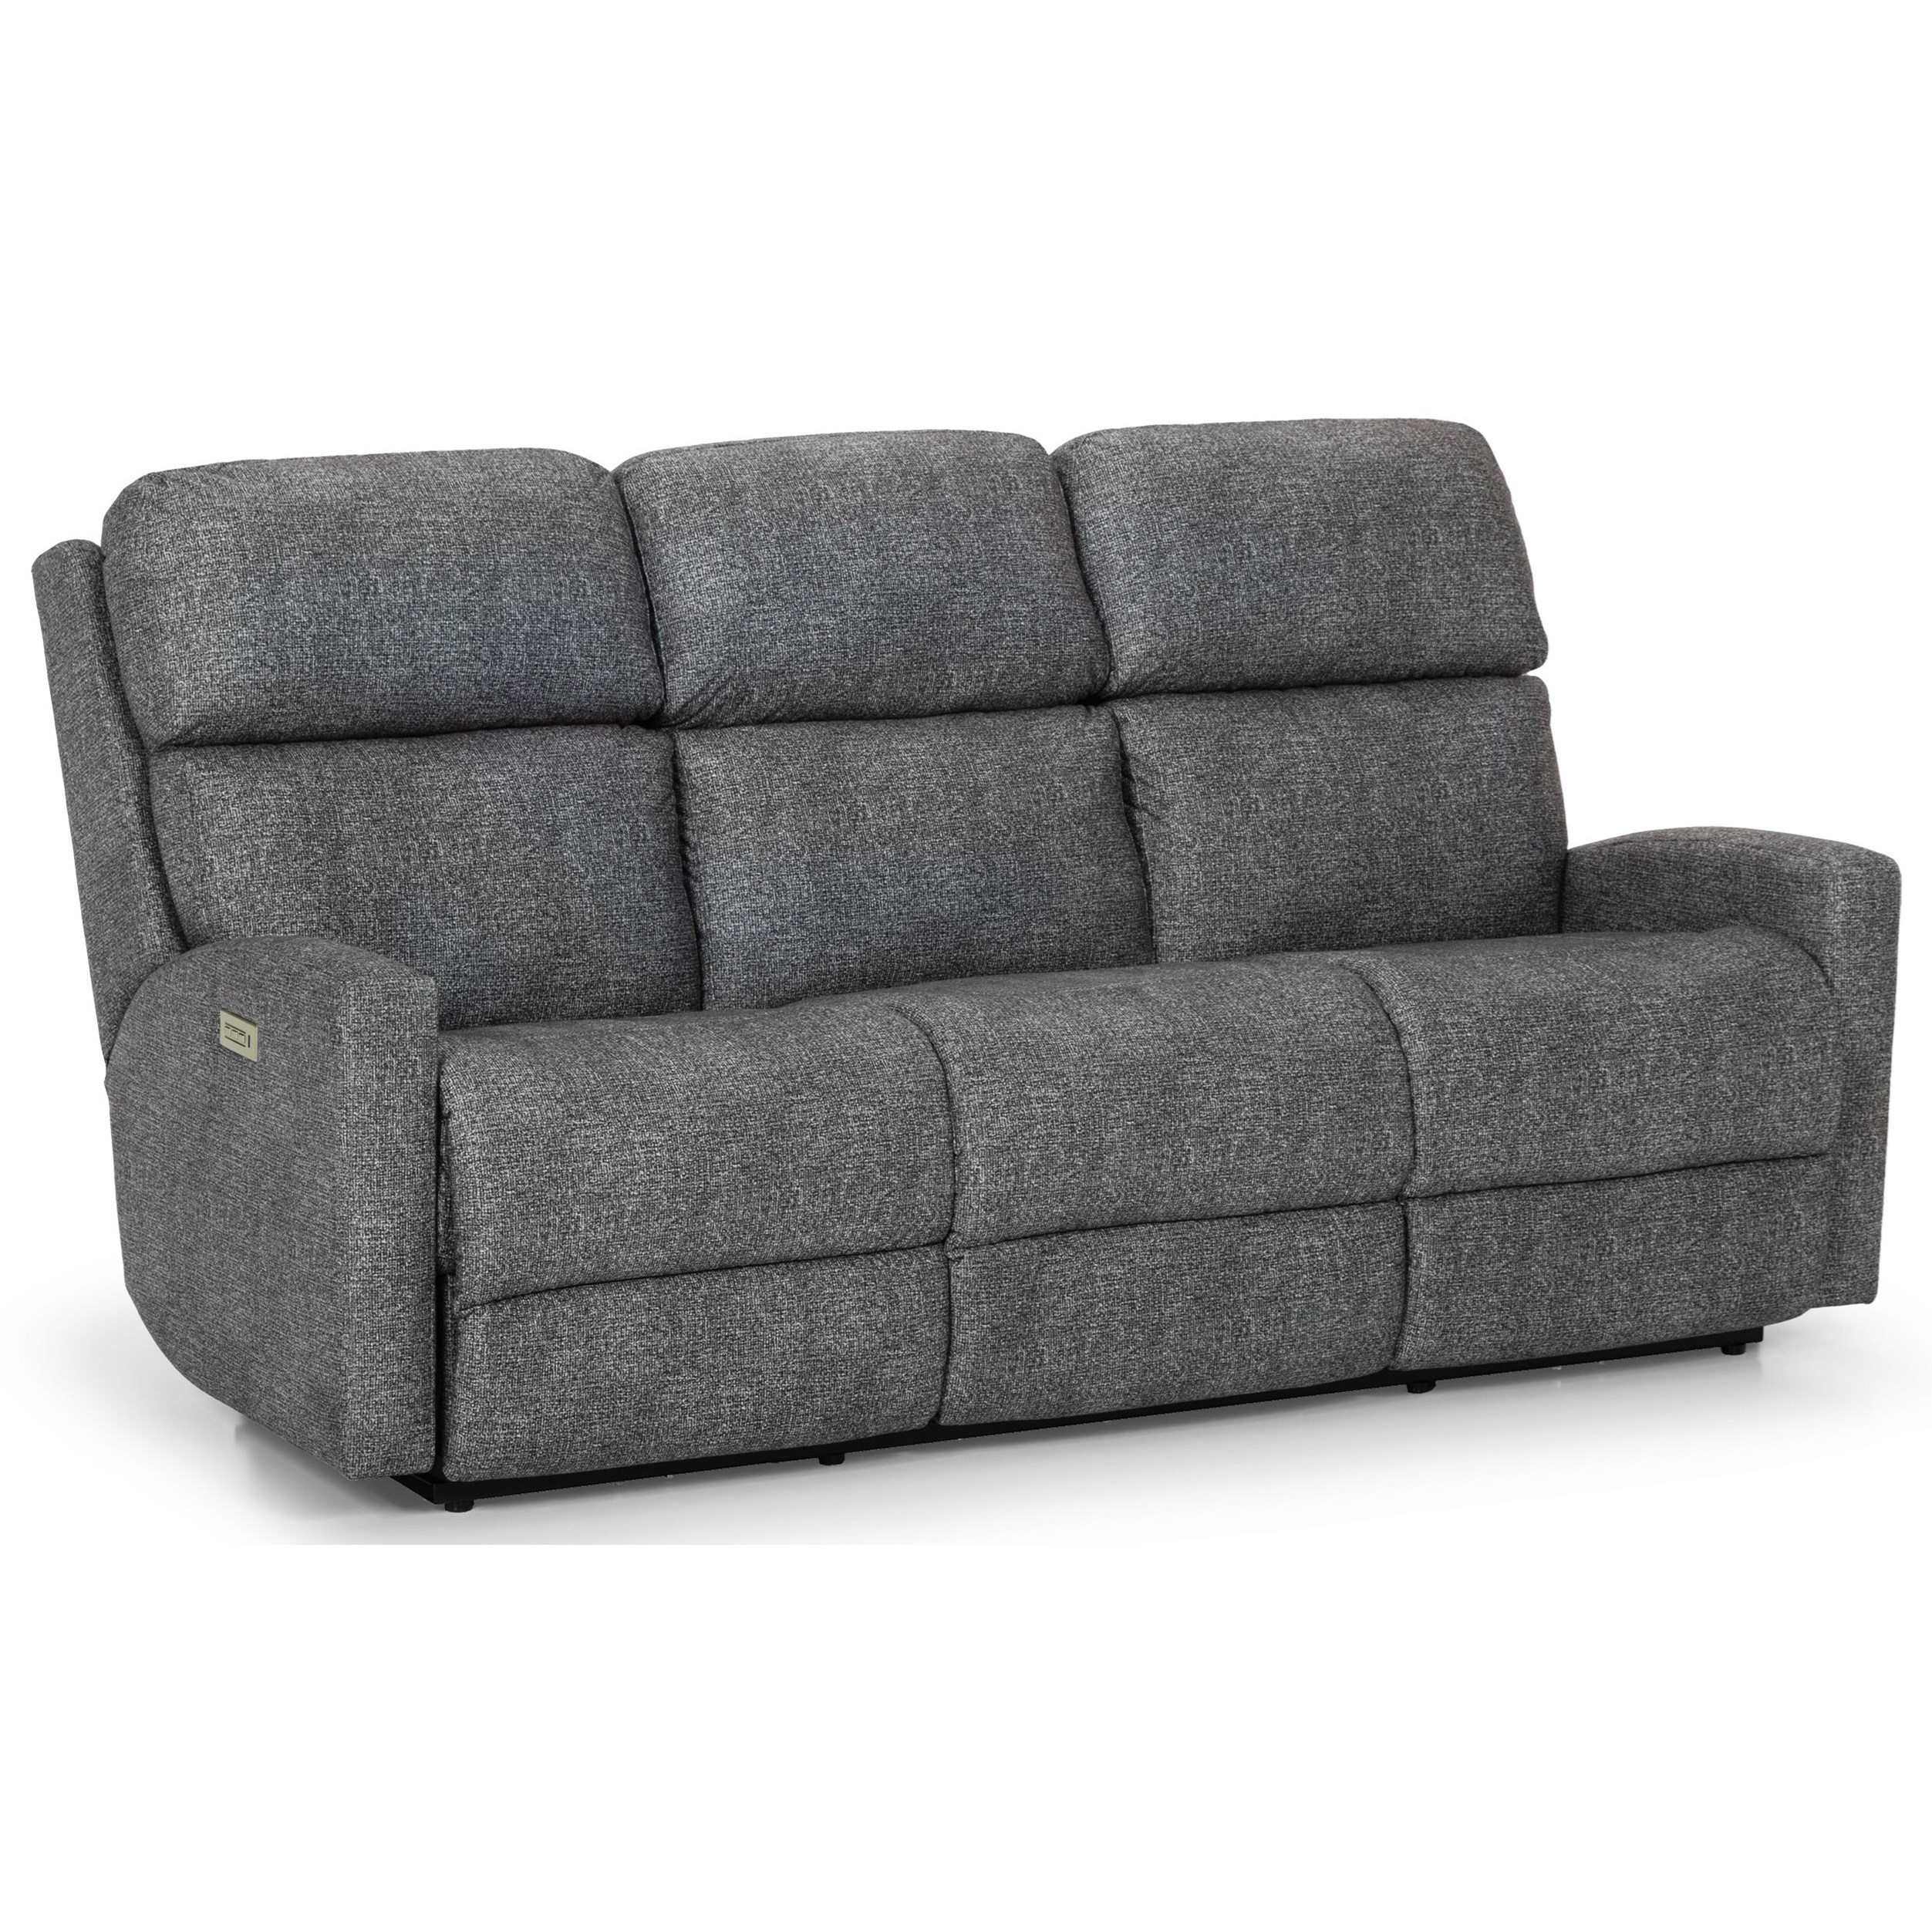 Stanton 857 Contemporary Power Reclining Sofa With Power Head/Lumbar And  USB Charging Ports